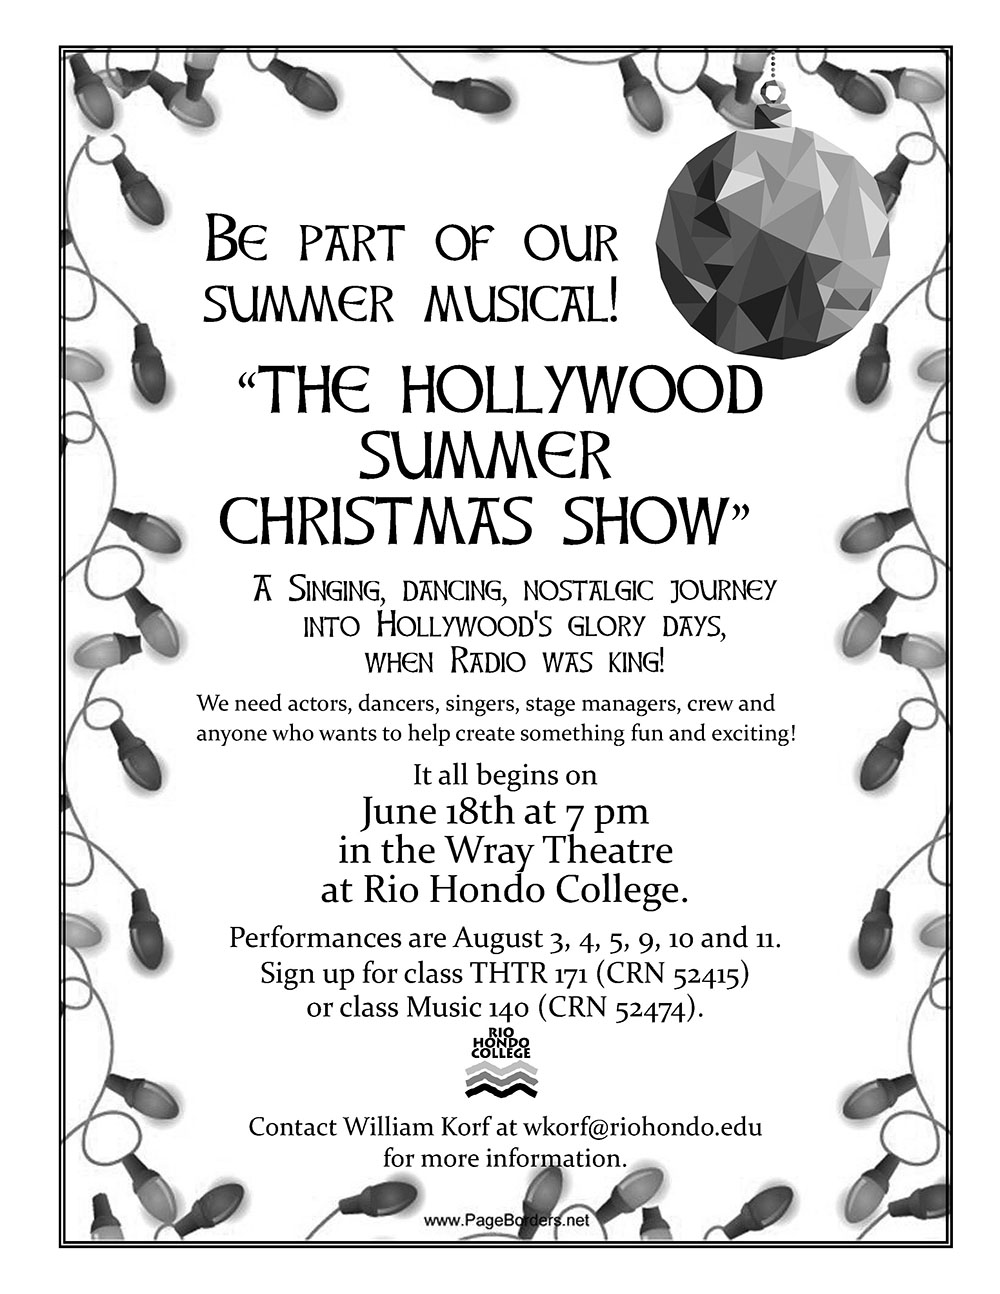 Audition Notice - The Hollywood summer christmas show